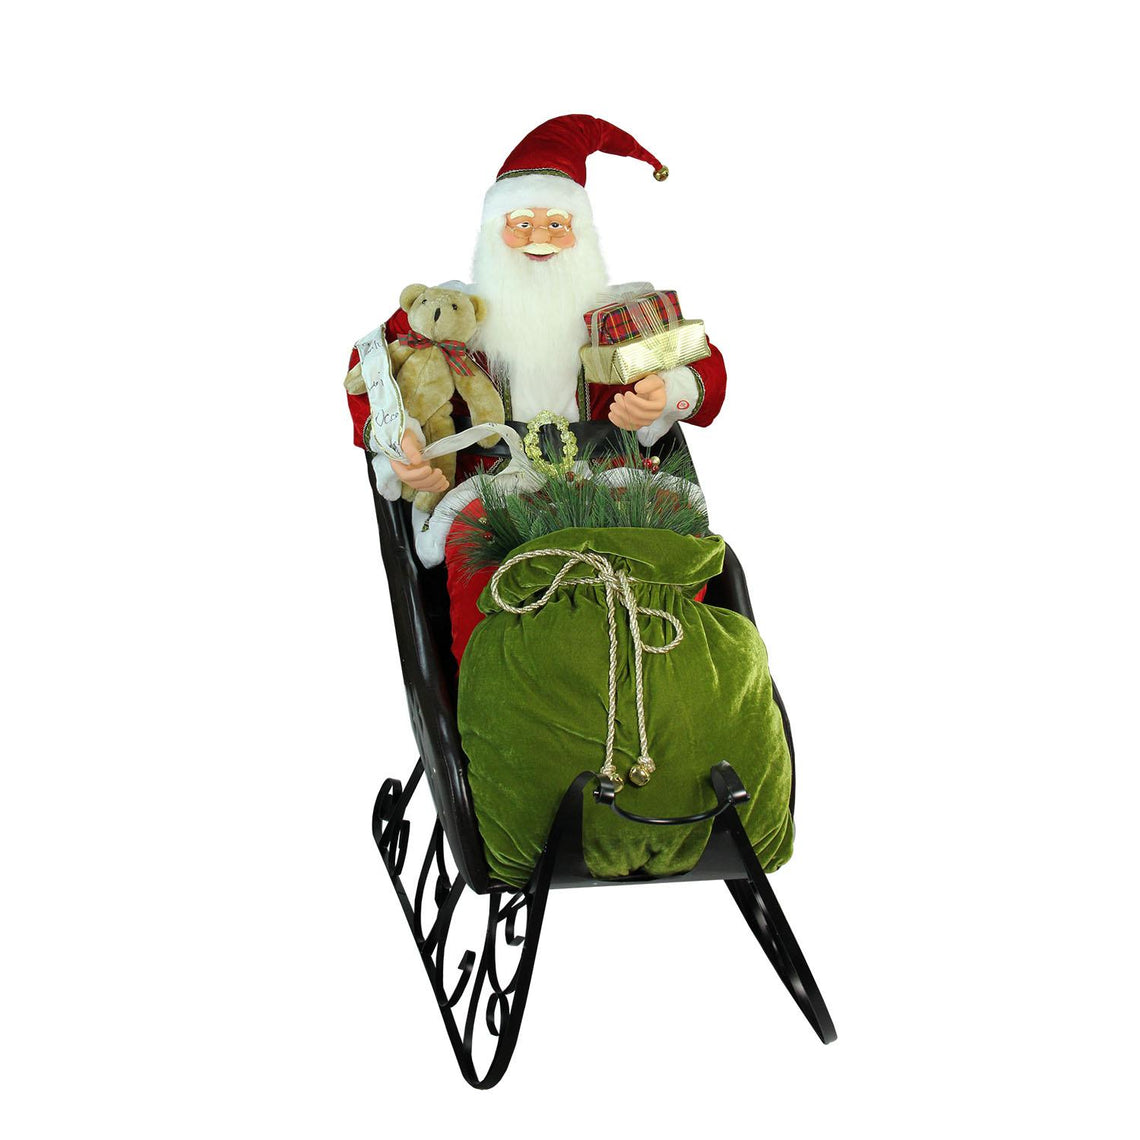 4' Deluxe Animated Musical Santa Claus in Jeweled Sleigh Christmas Decoration